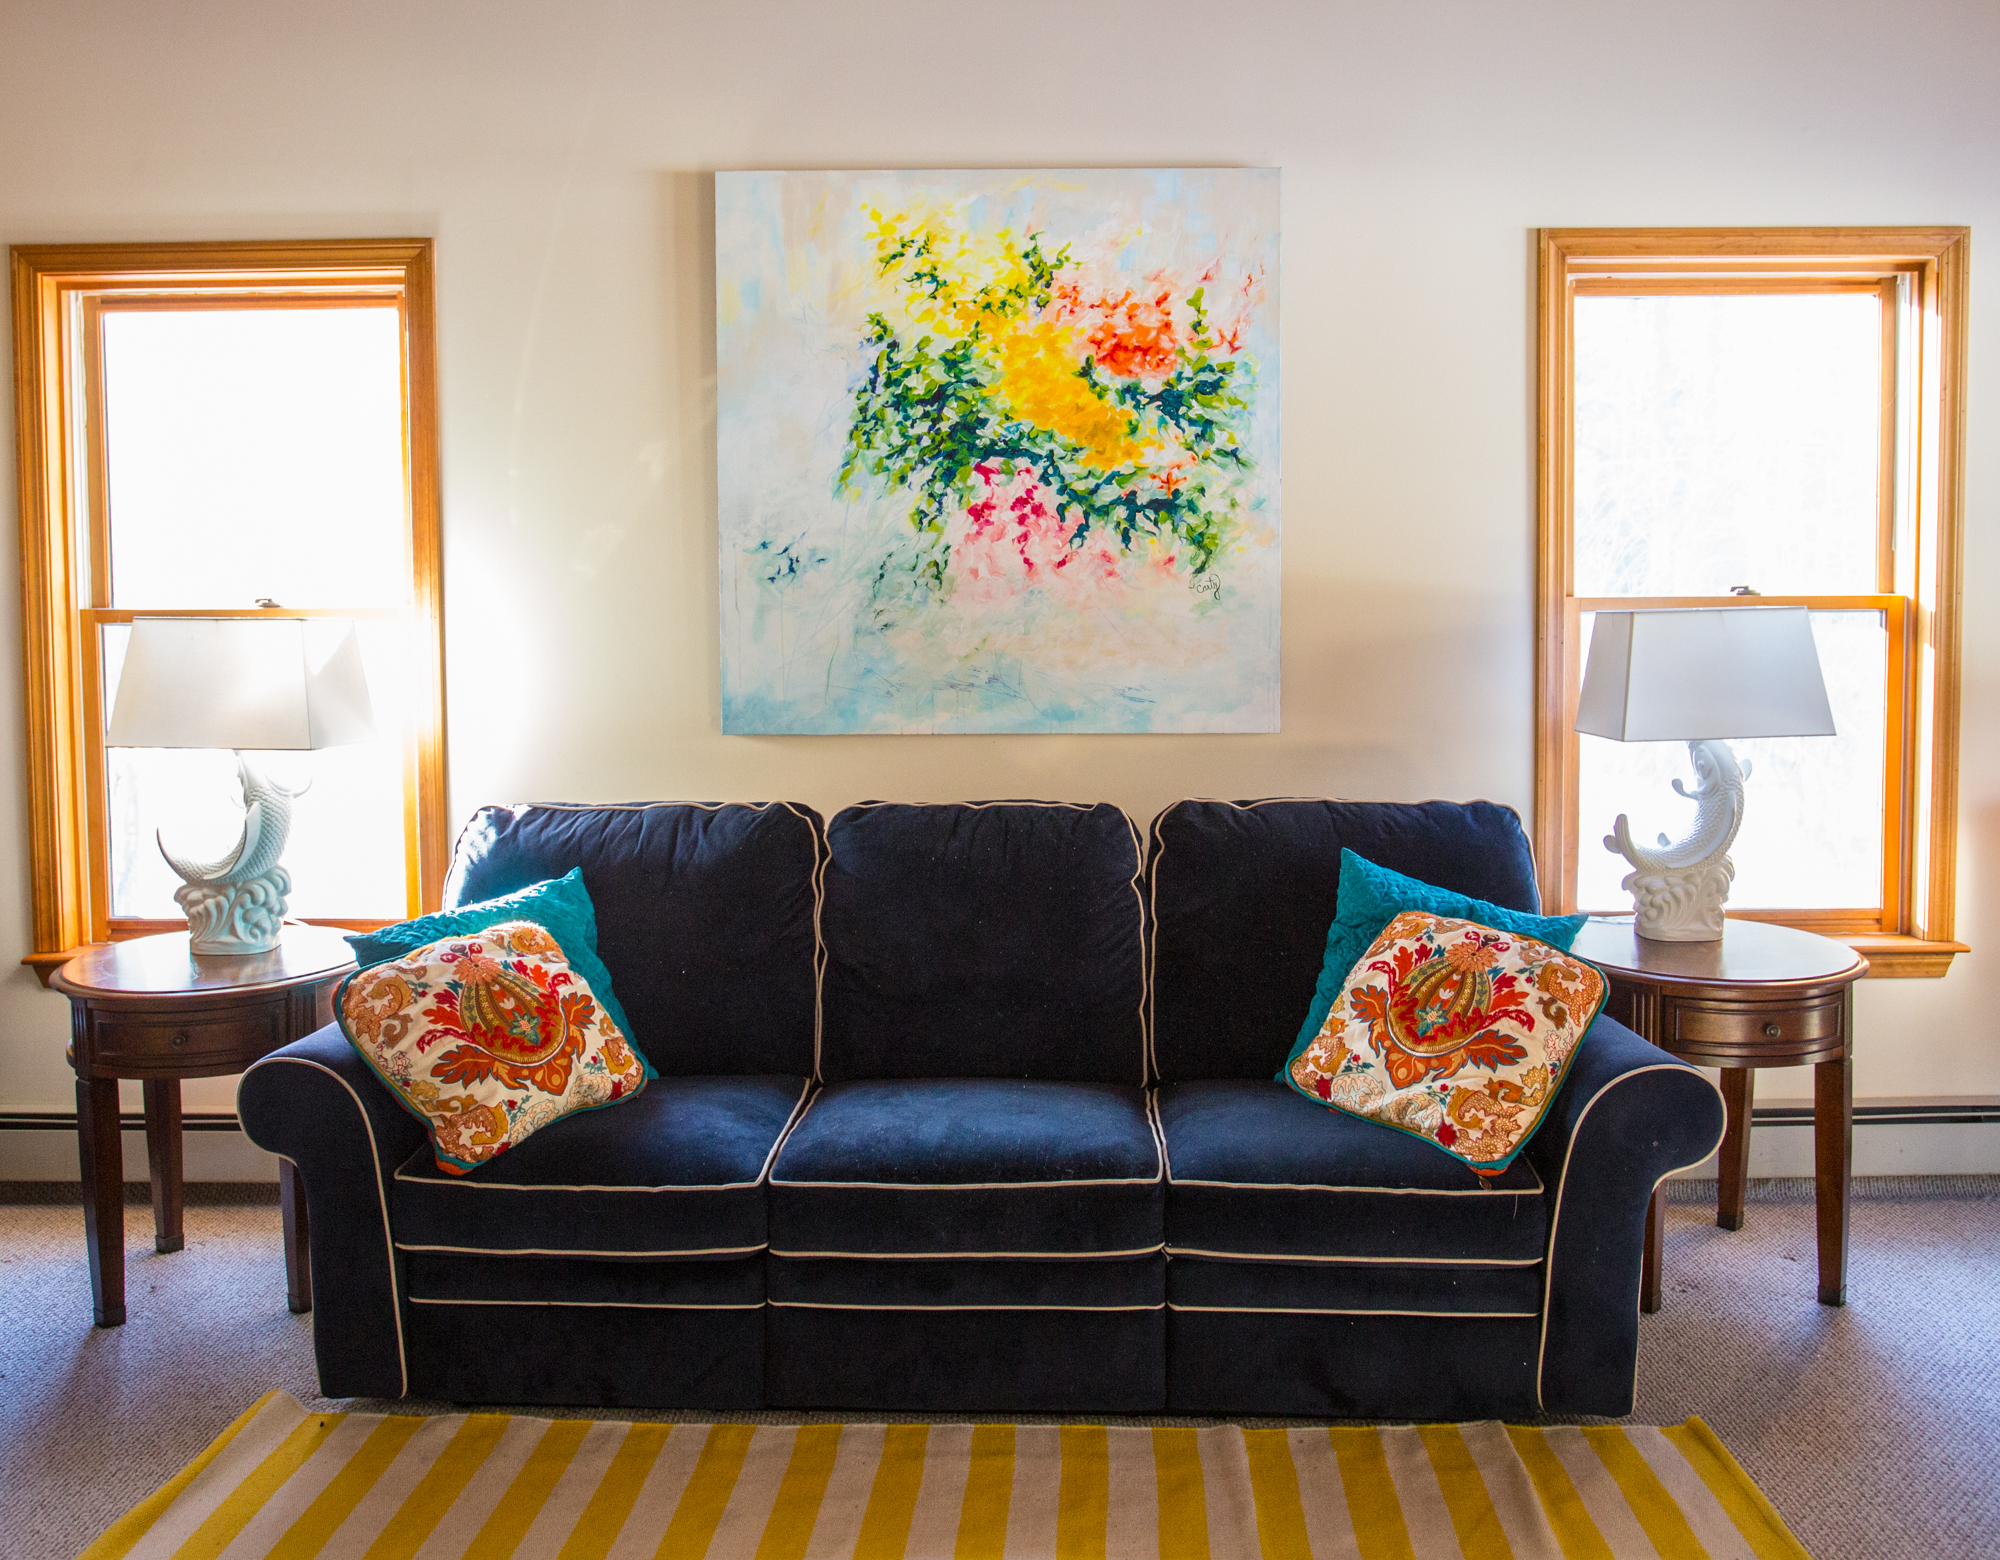 colorful happy large abstract painting by artist Megan Carty